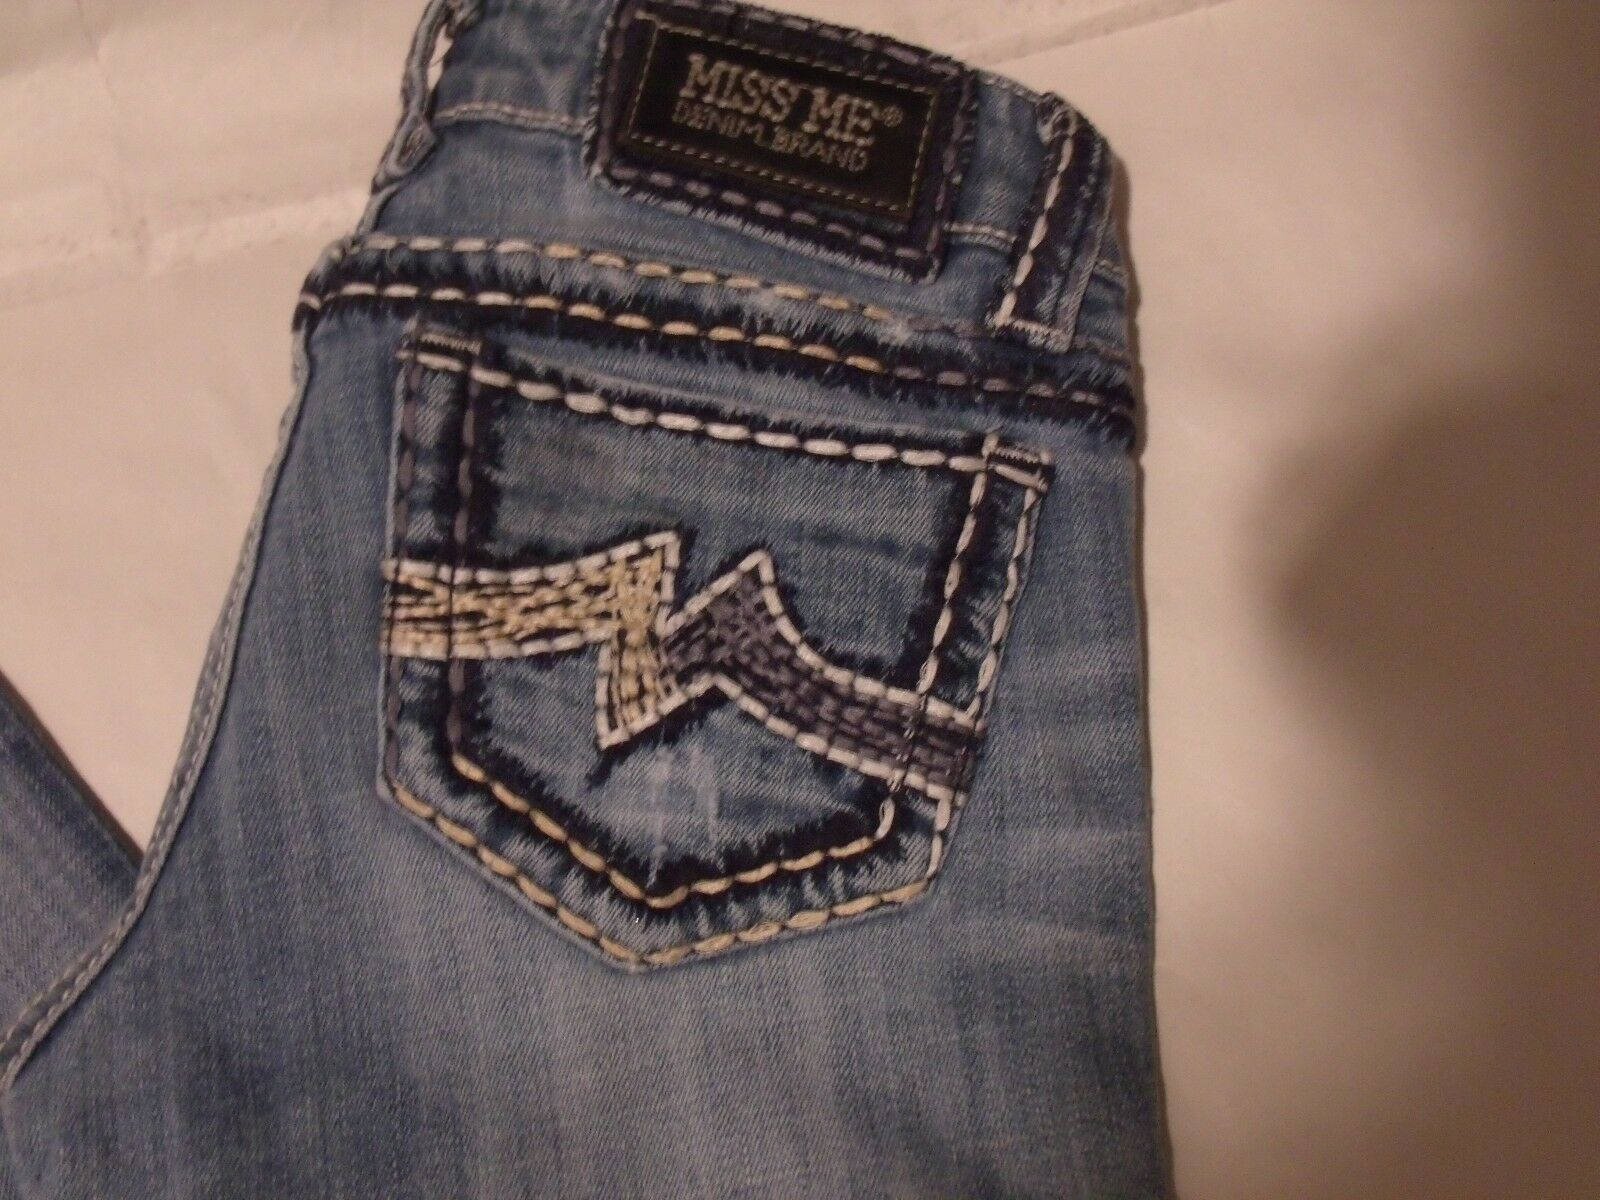 MISS ME SUNNY SKINNY SZ 26 DISTRESSED LIGHT WASH blueE JEANS